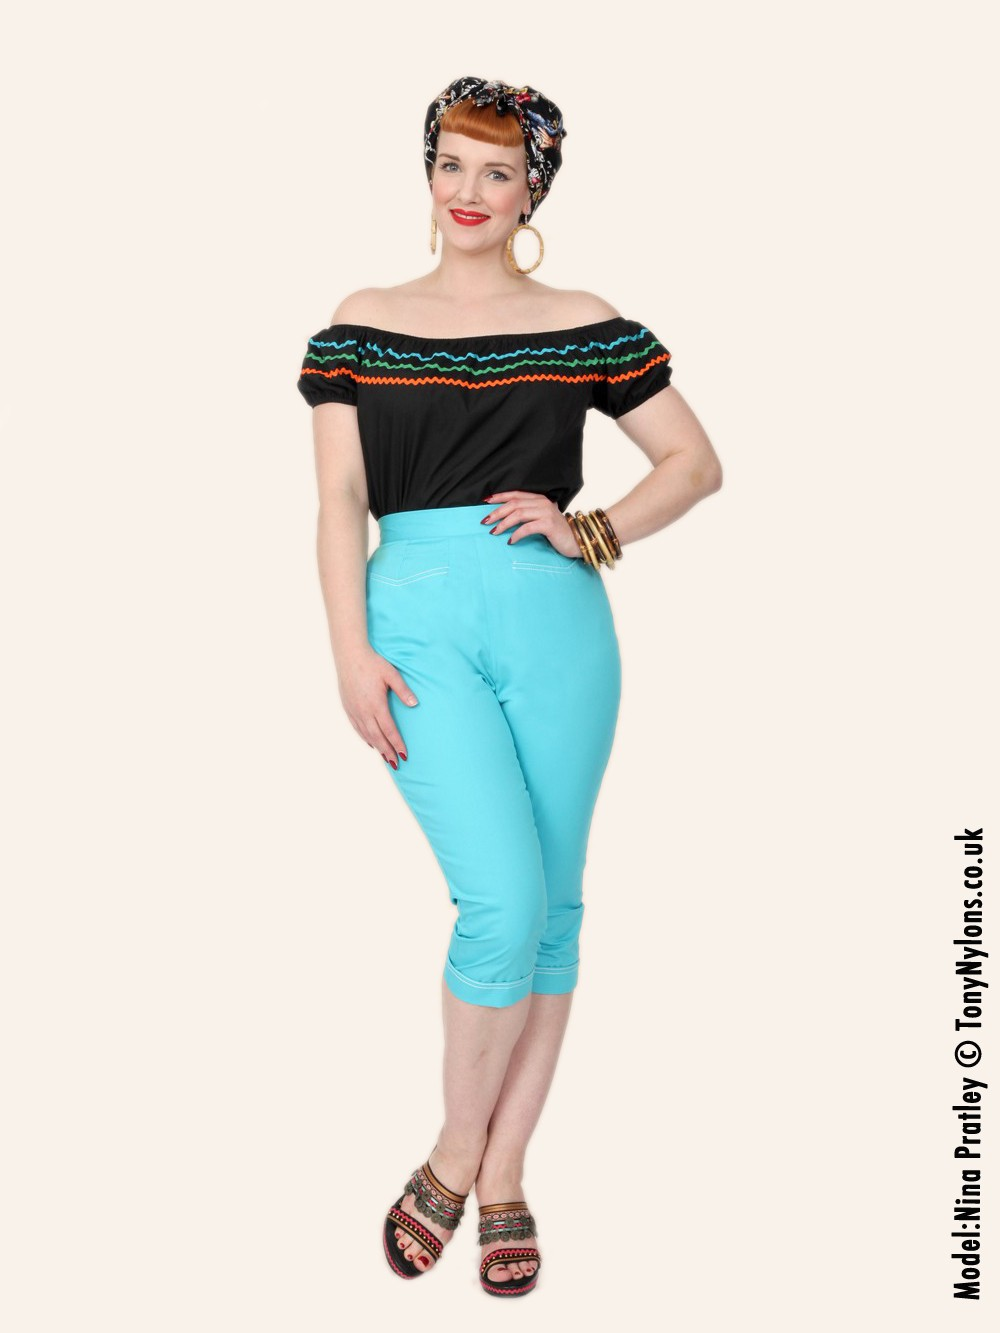 Capri Pants Turquoise Drill from Vivien of Holloway